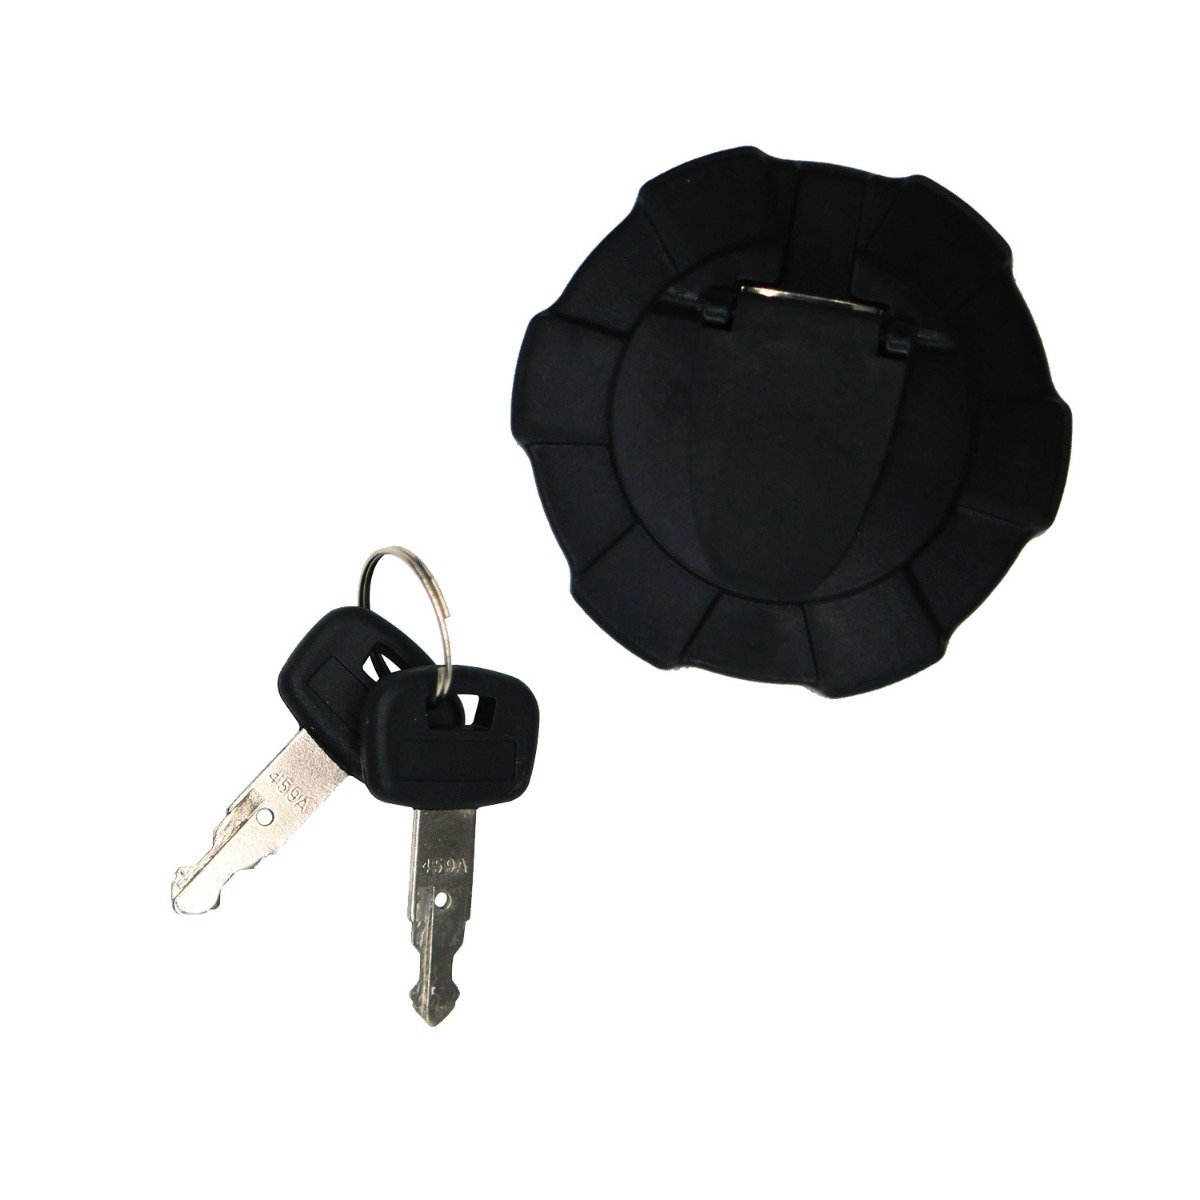 Fuel Tank Cap RD411-51122 Compatible with Kubota Excavador U35-4 U35-S2 U55 U45S U45ST U55-4 KX121-3ST KX161-3S KX040-4 KX057-4 KX121-3S KX91-3S